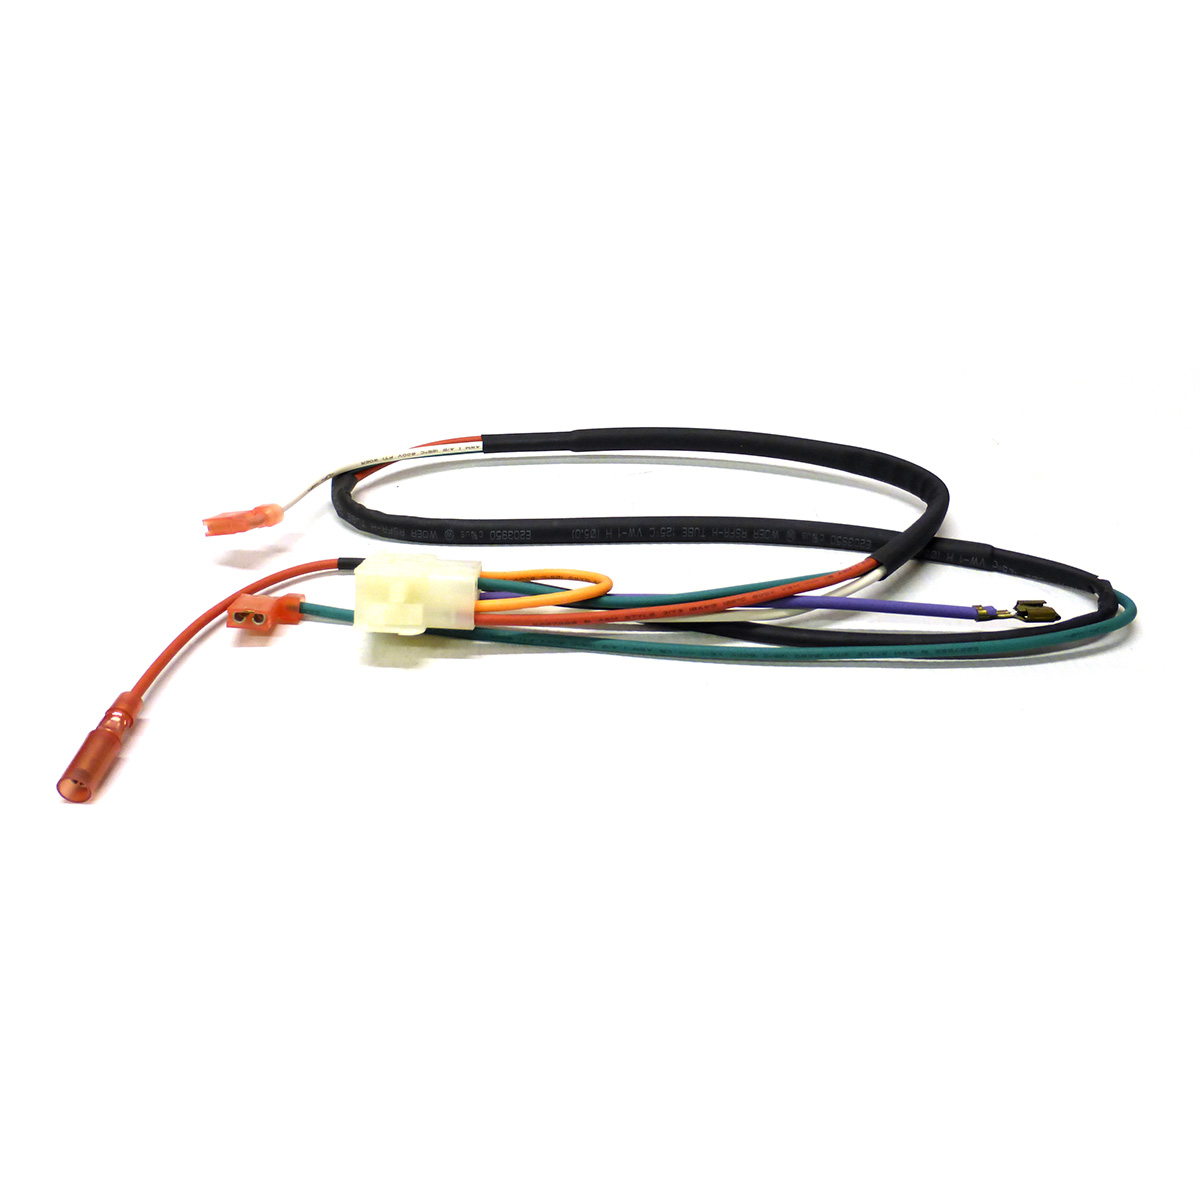 Wiring Harness KH-20-176-16-S